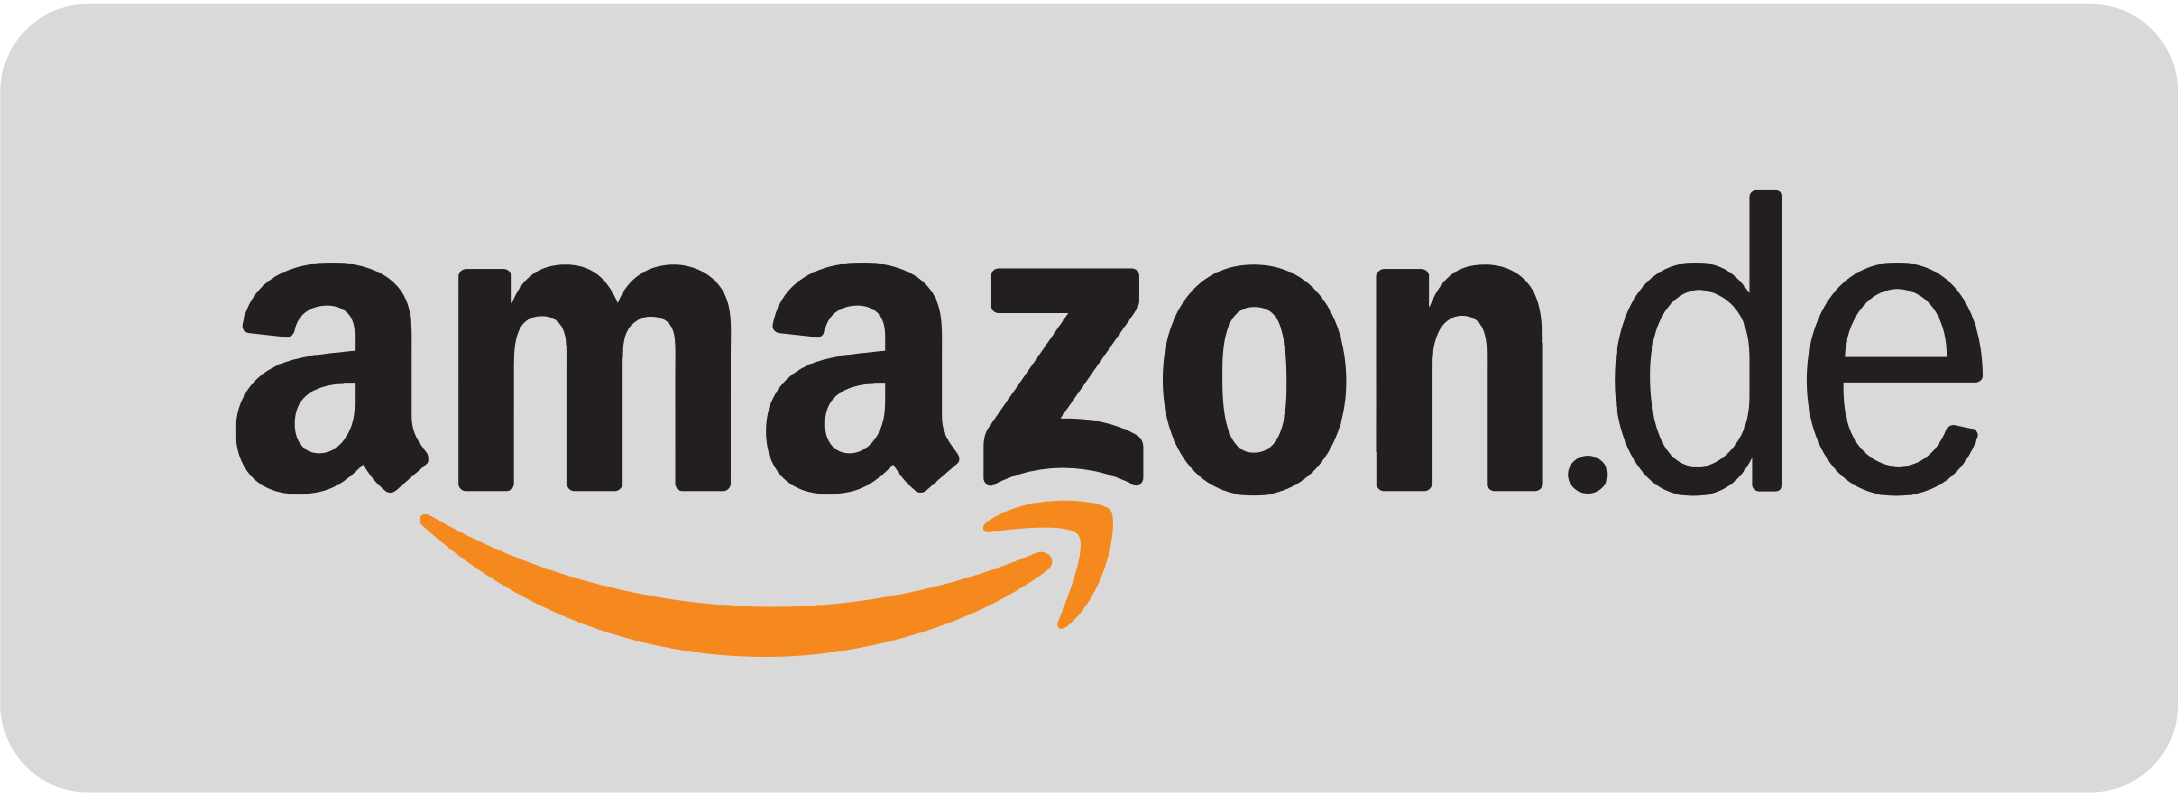 Connected Group Ltd Website Assets_Amazon de logo copy.png